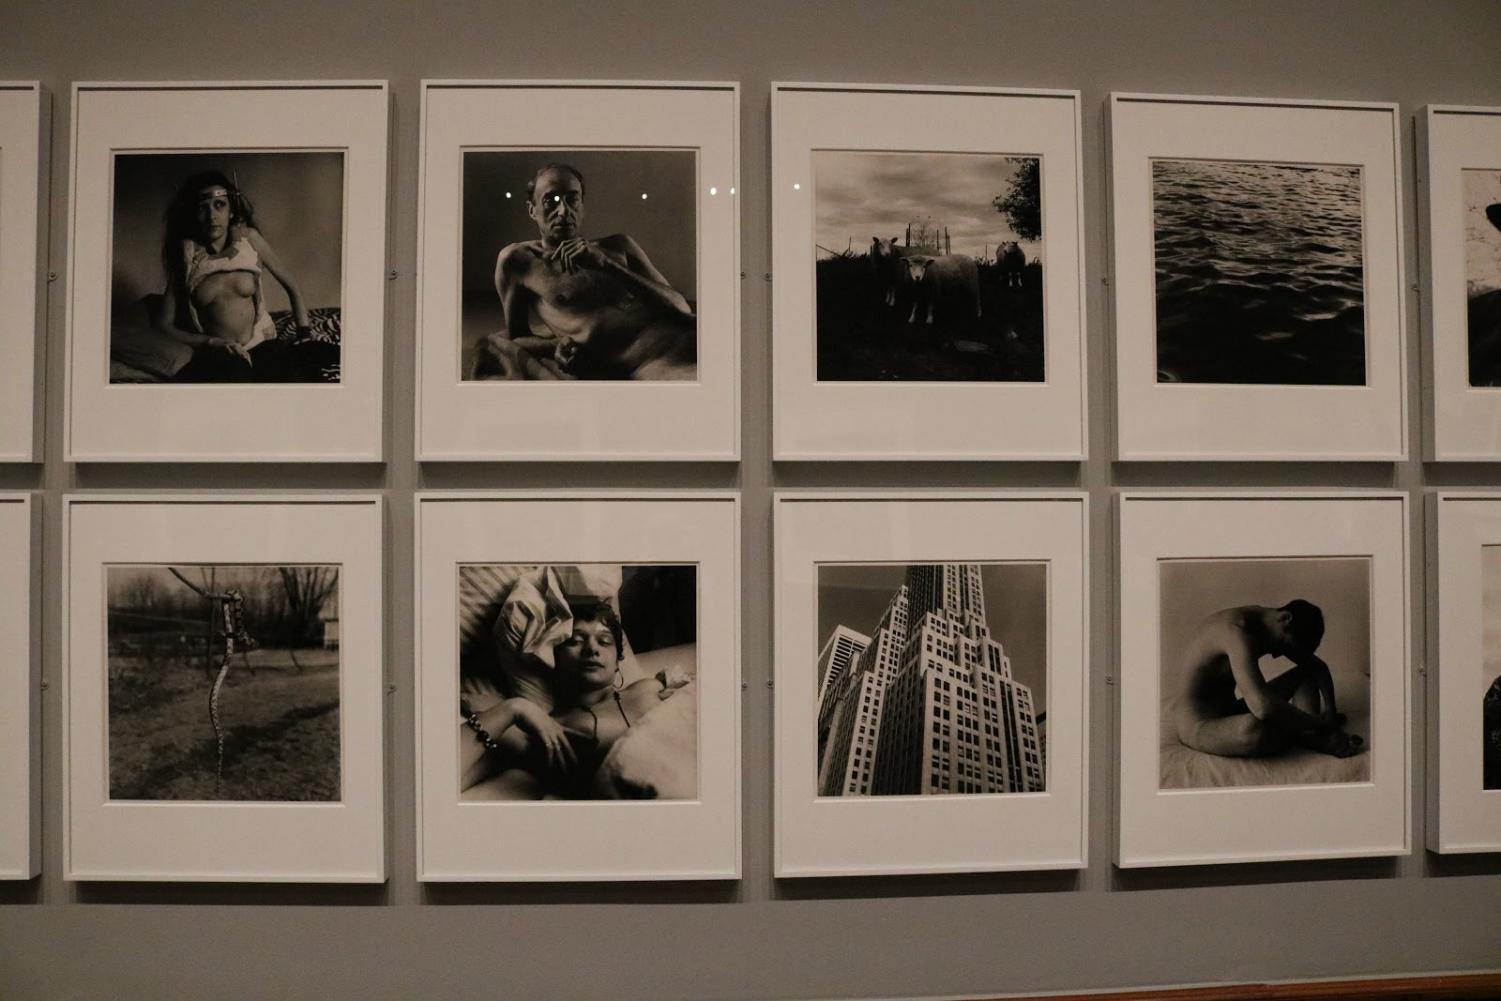 A current photography exhibition at the Morgan Library & Museum features work by Peter Hujar, who documented New York City gay life from the 1969 Stonewall Uprising to the AIDS crisis of the 1980's. Curated by Joel Smith,   'Peter Hujar: Speed of Life,' will run until May 20.